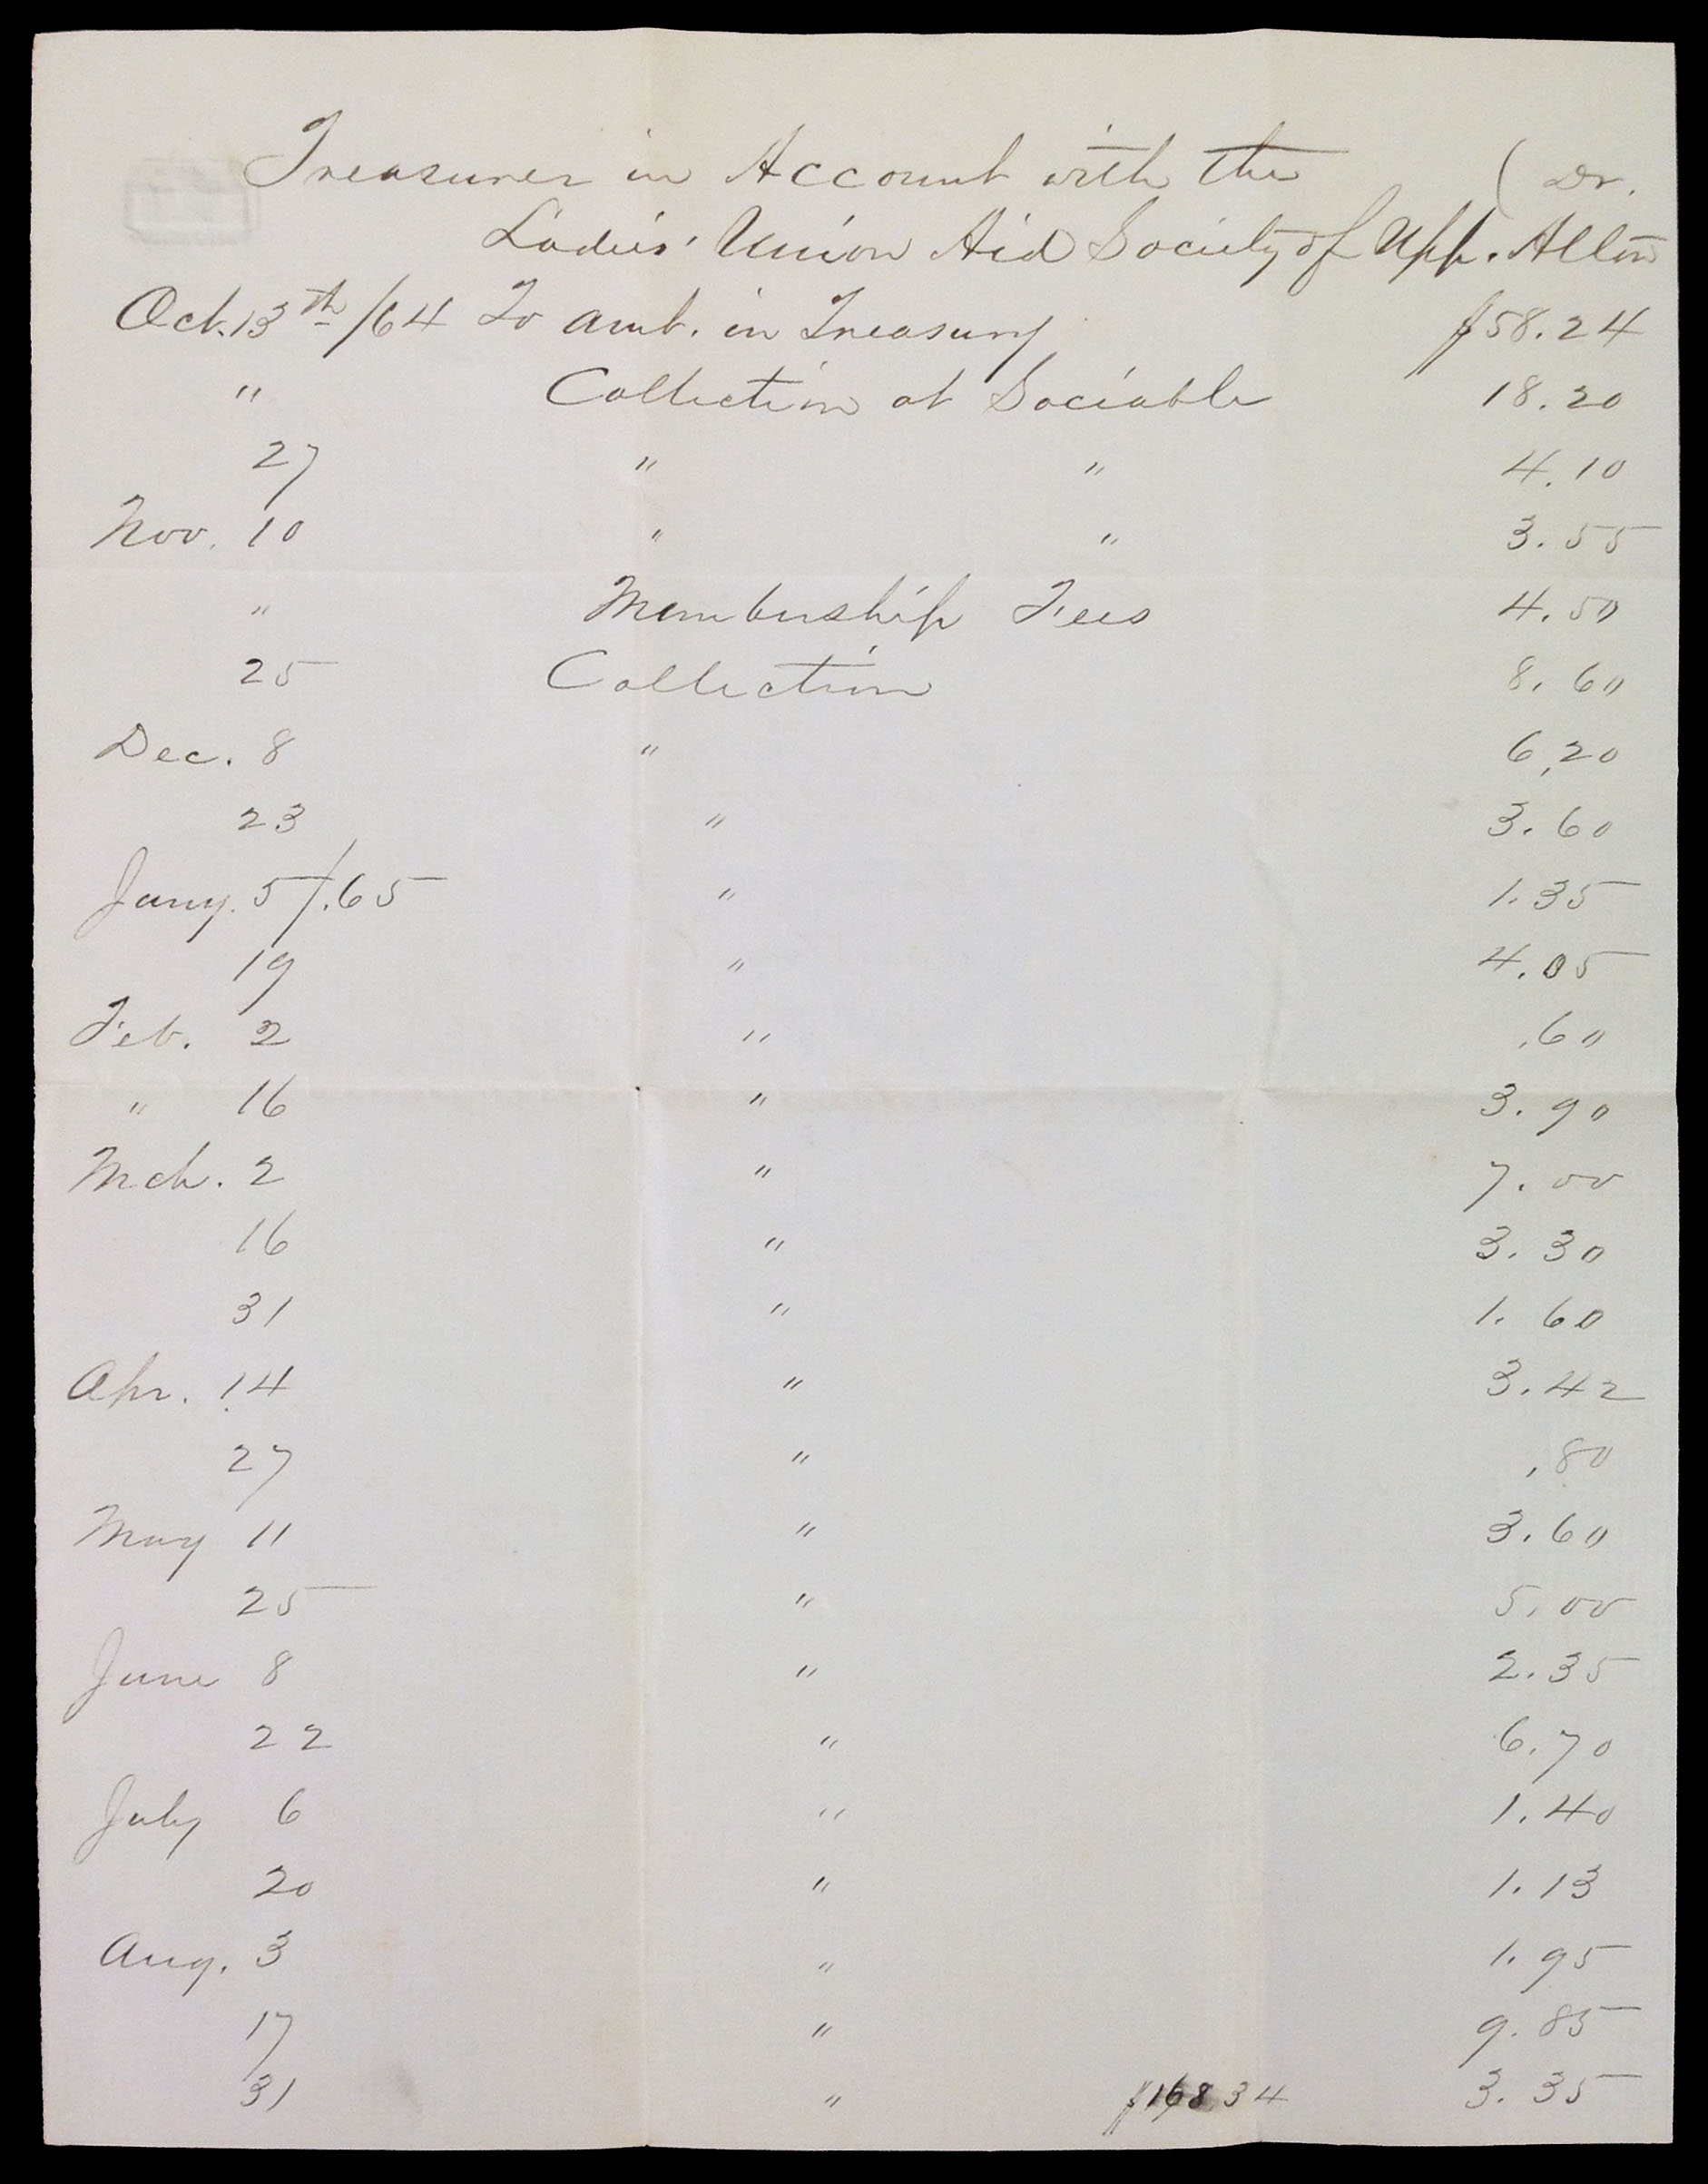 Treasurer's report for the Ladies' Union Aid Society of Upper Alton, 1864-1865.